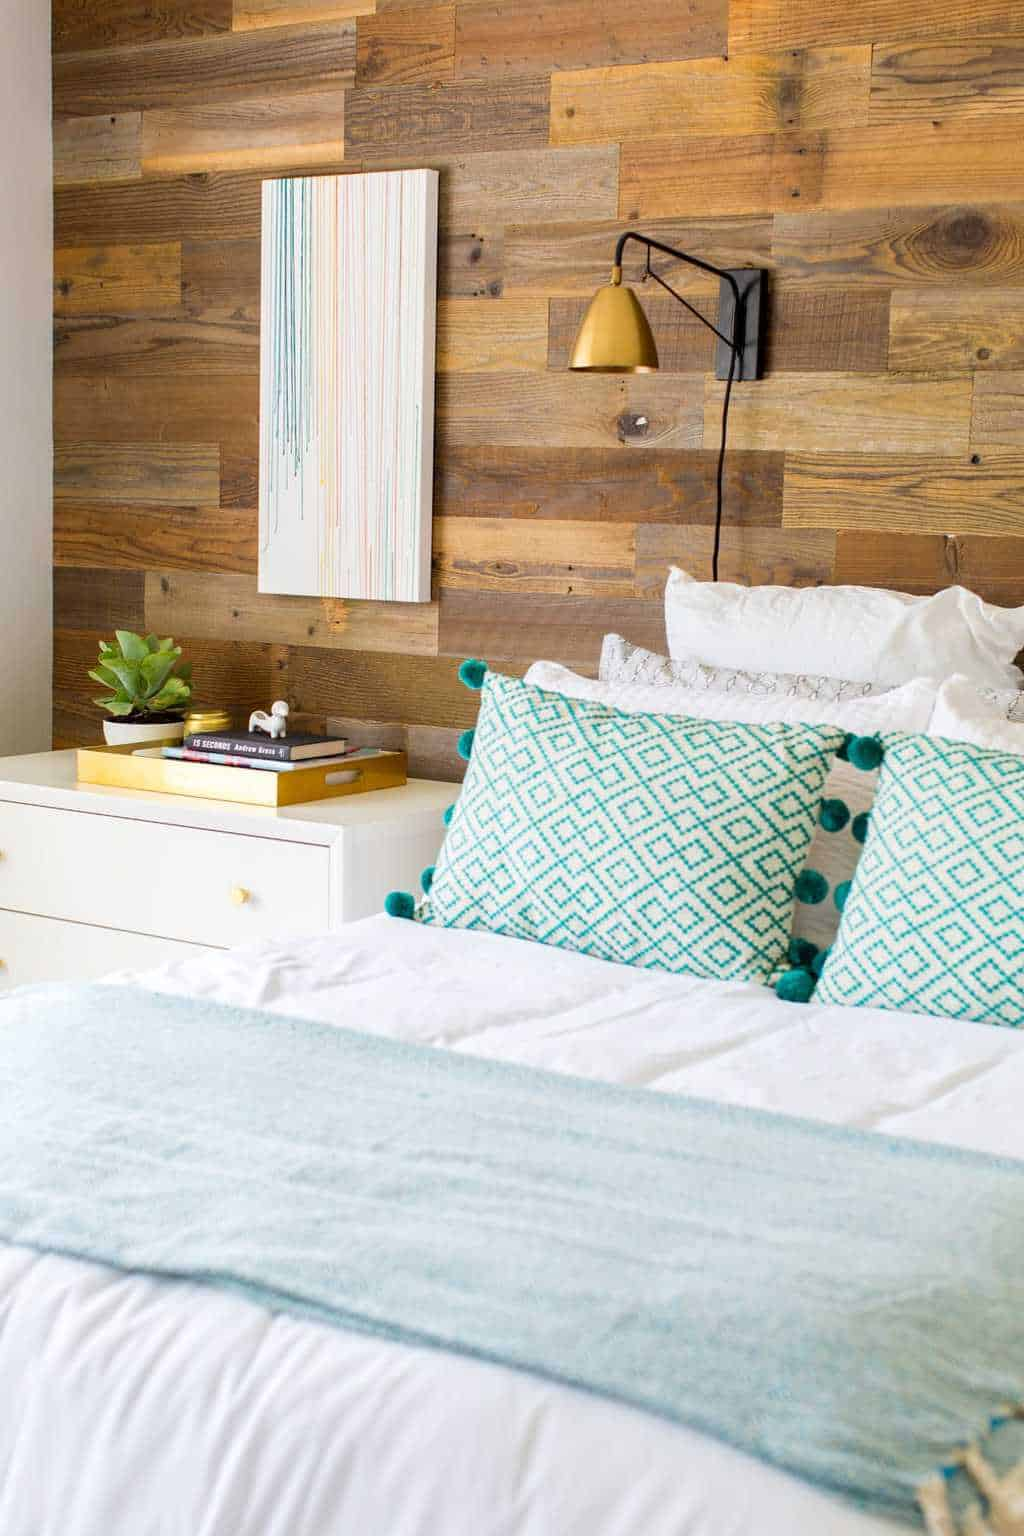 A before and after simple bedroom makeover as a gift to our fam! - sugar and cloth - home decor - best DIY blog - houston - ashley rose